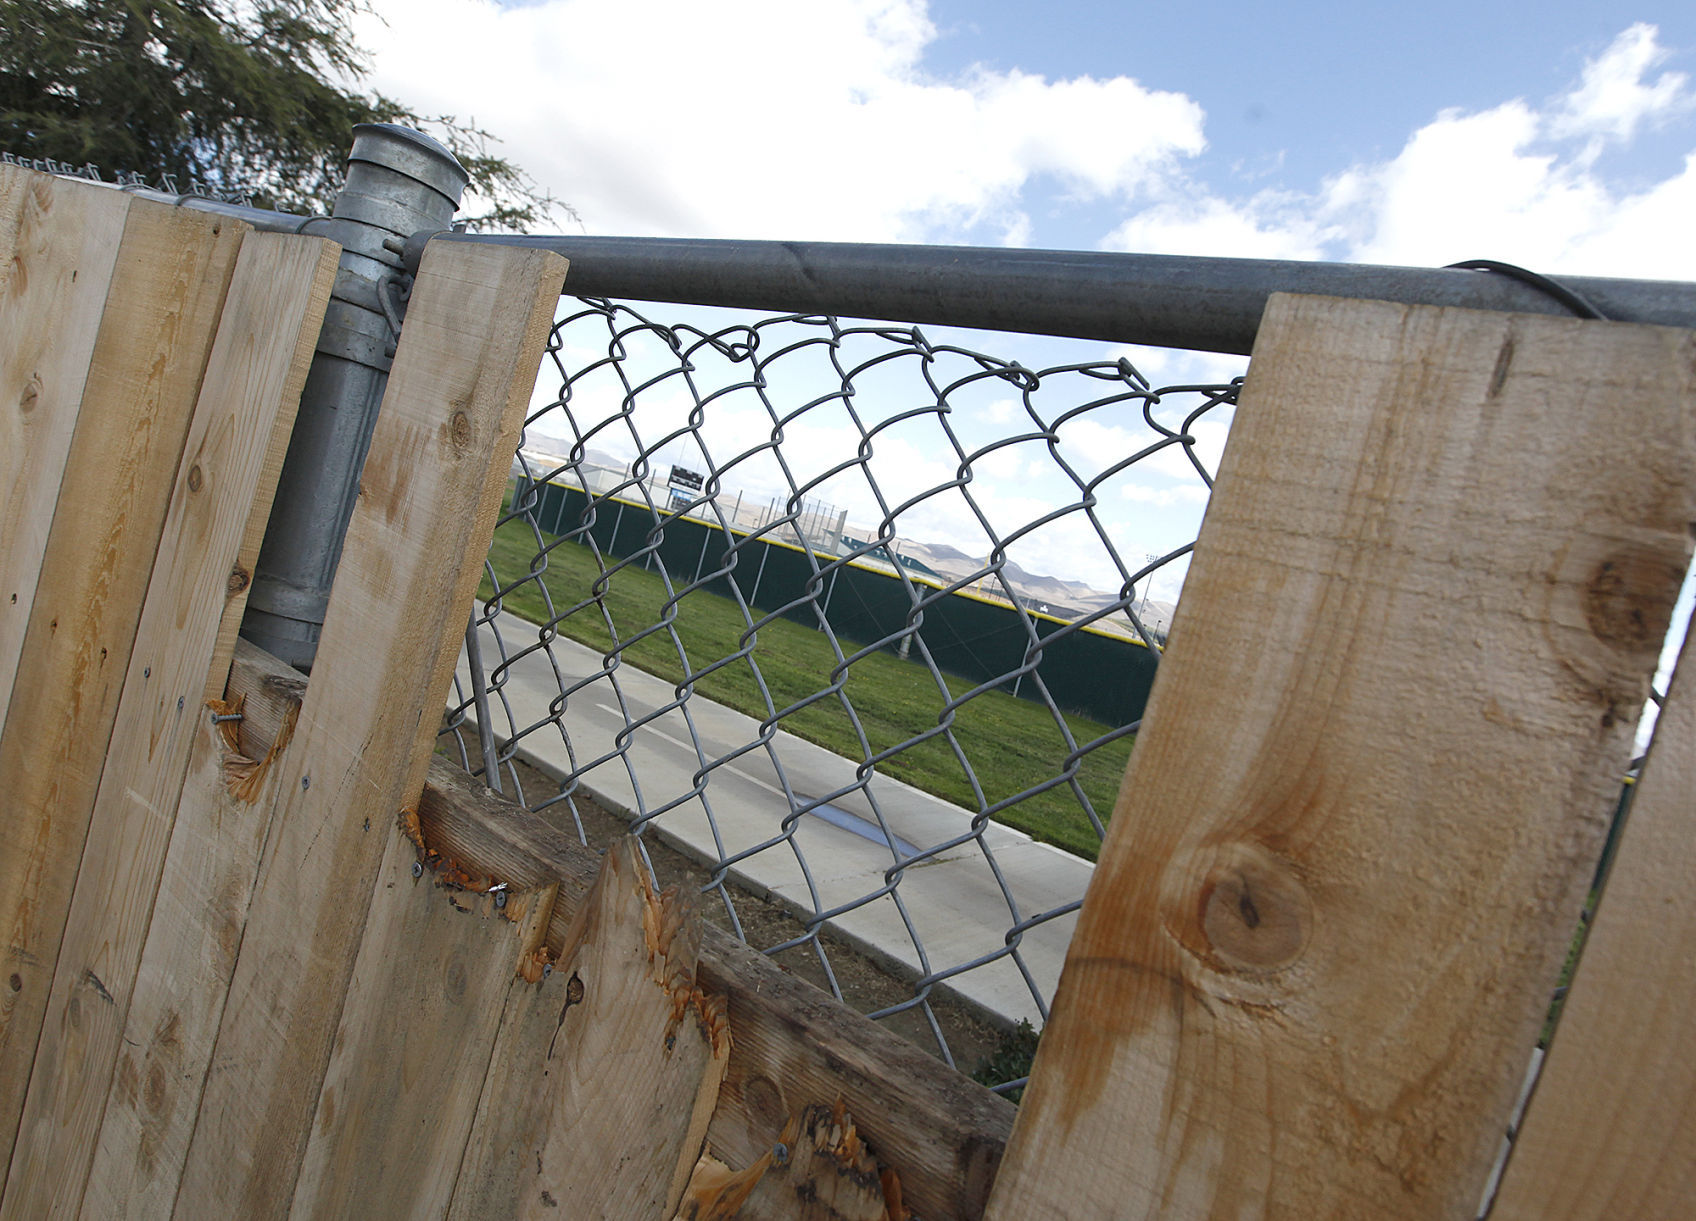 Fence separating high school from homes a problem, neighbors say ...